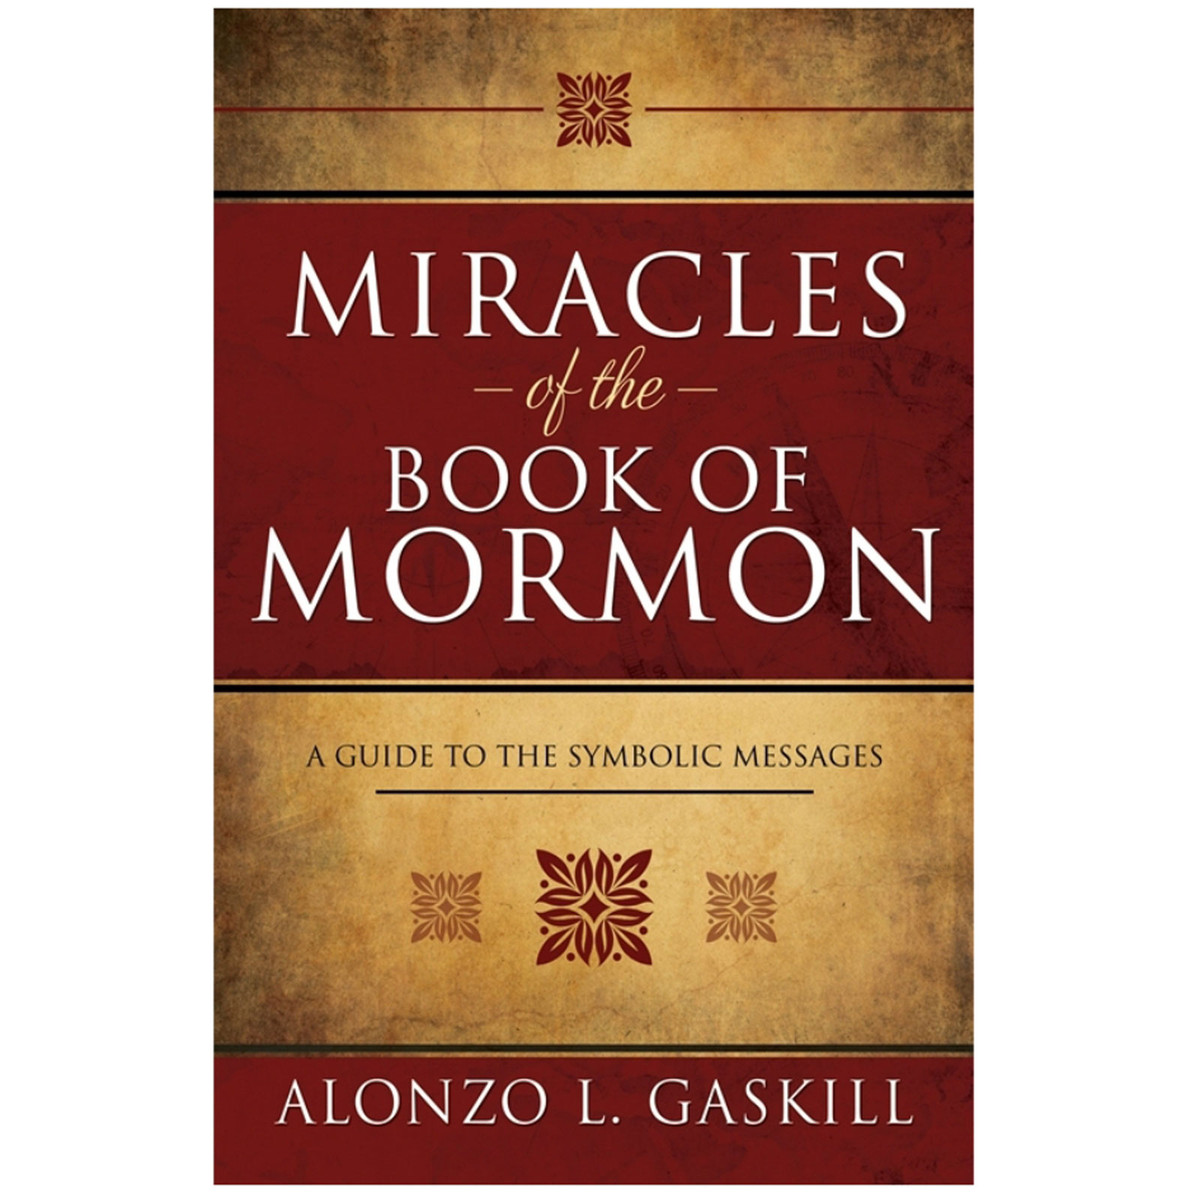 Miracles Of The Book Of Mormon By Alonzo L. Gaskill